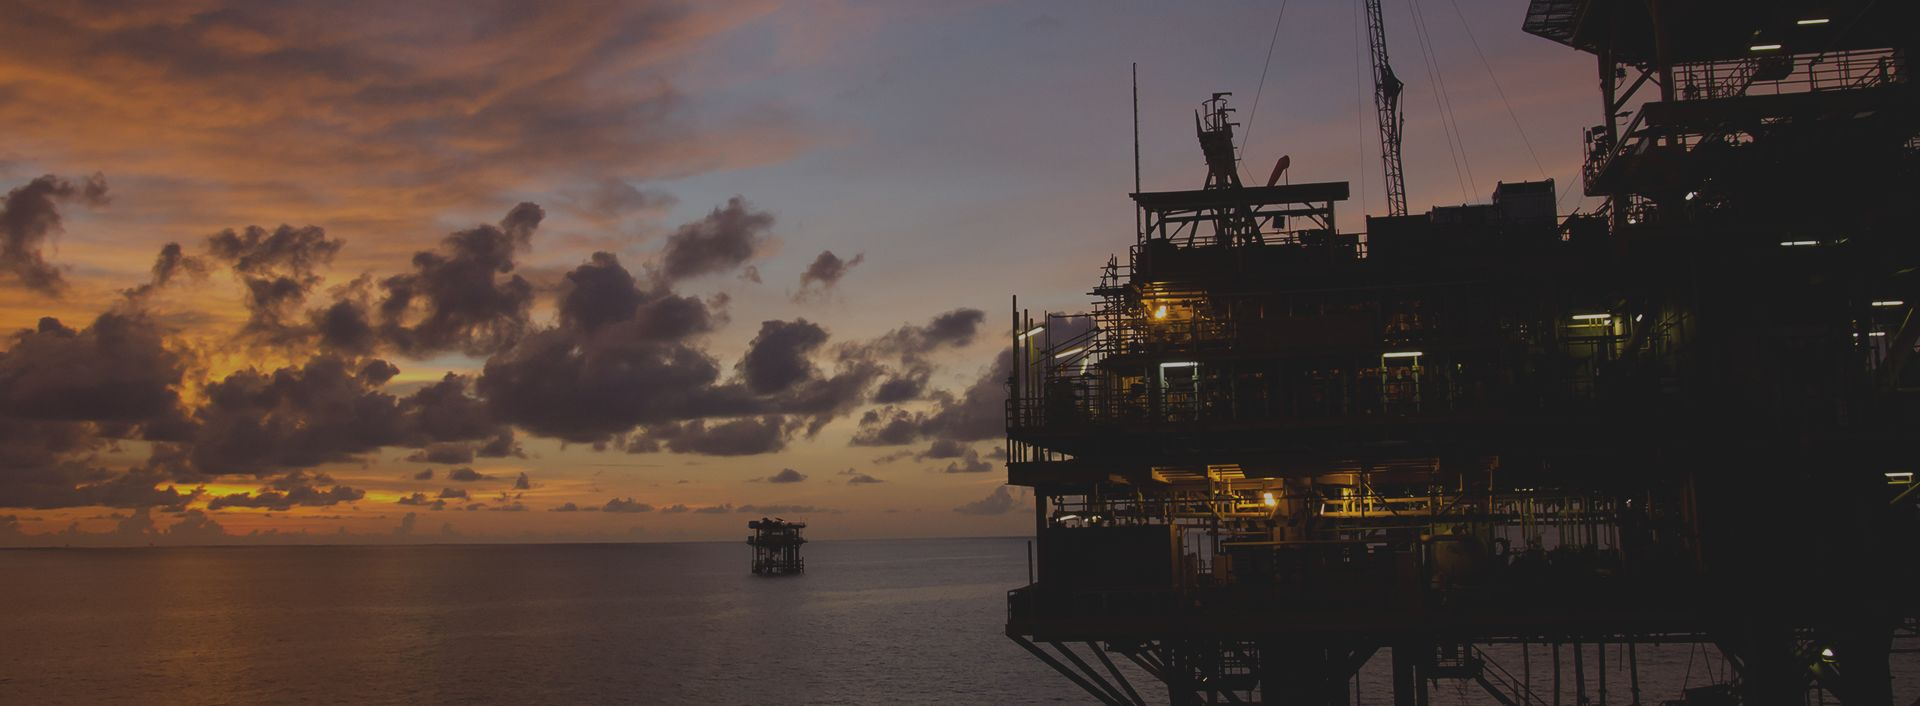 The 3 Primary Types of Offshore Oil Rigs